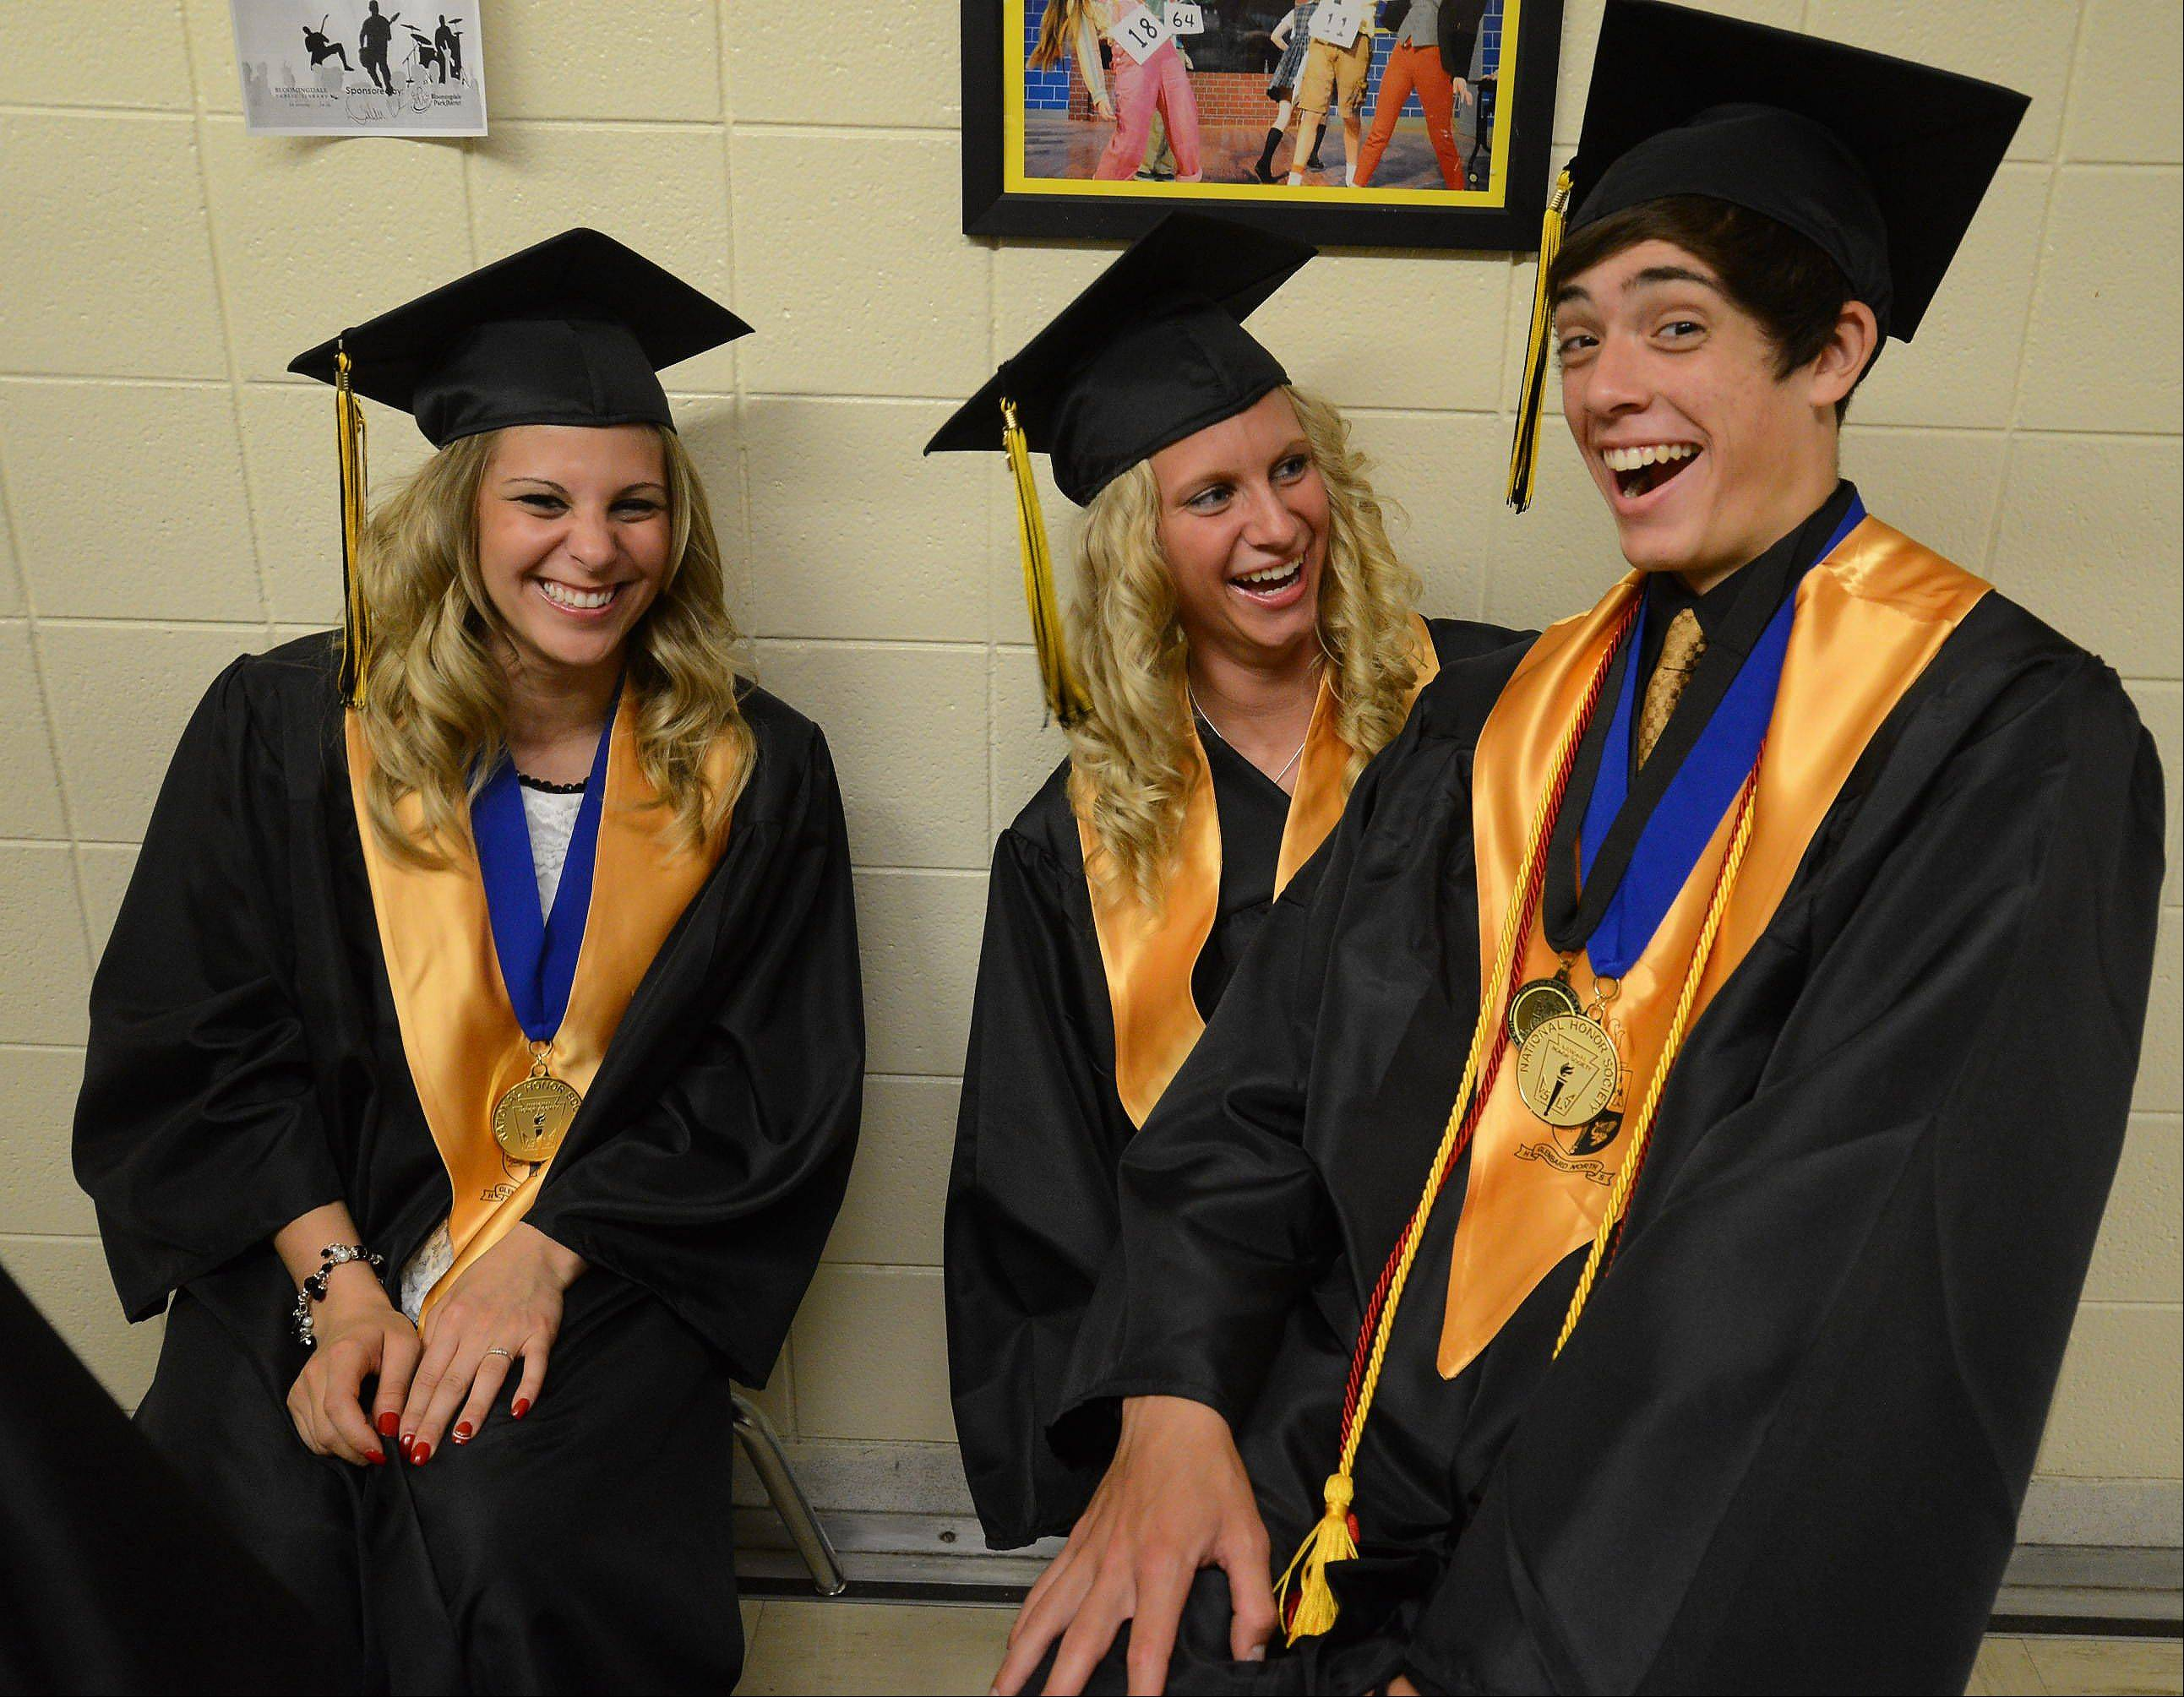 From left, Nicole Krippinger, Rachael Wahrman and Matt Krzyzaniak pass the time while waiting for the Glenbard North High School graduation to begin.